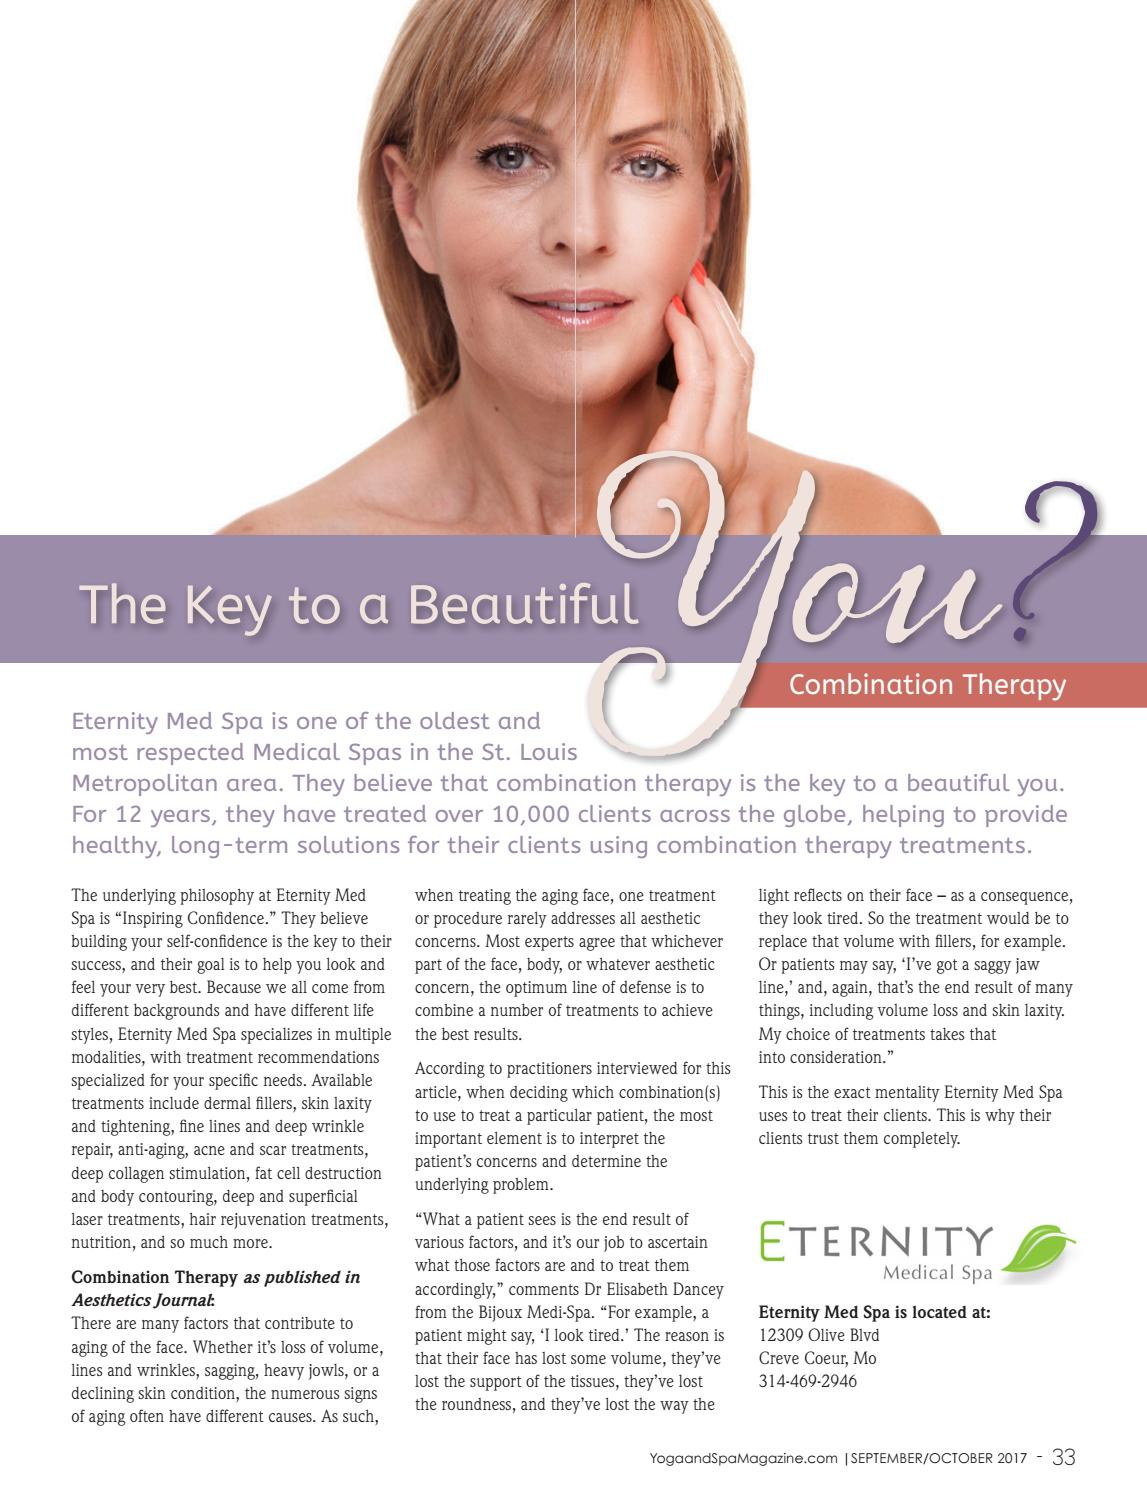 Yoga & Spa Magazine Sept/Oct 2017 The Healthy Woman Issue